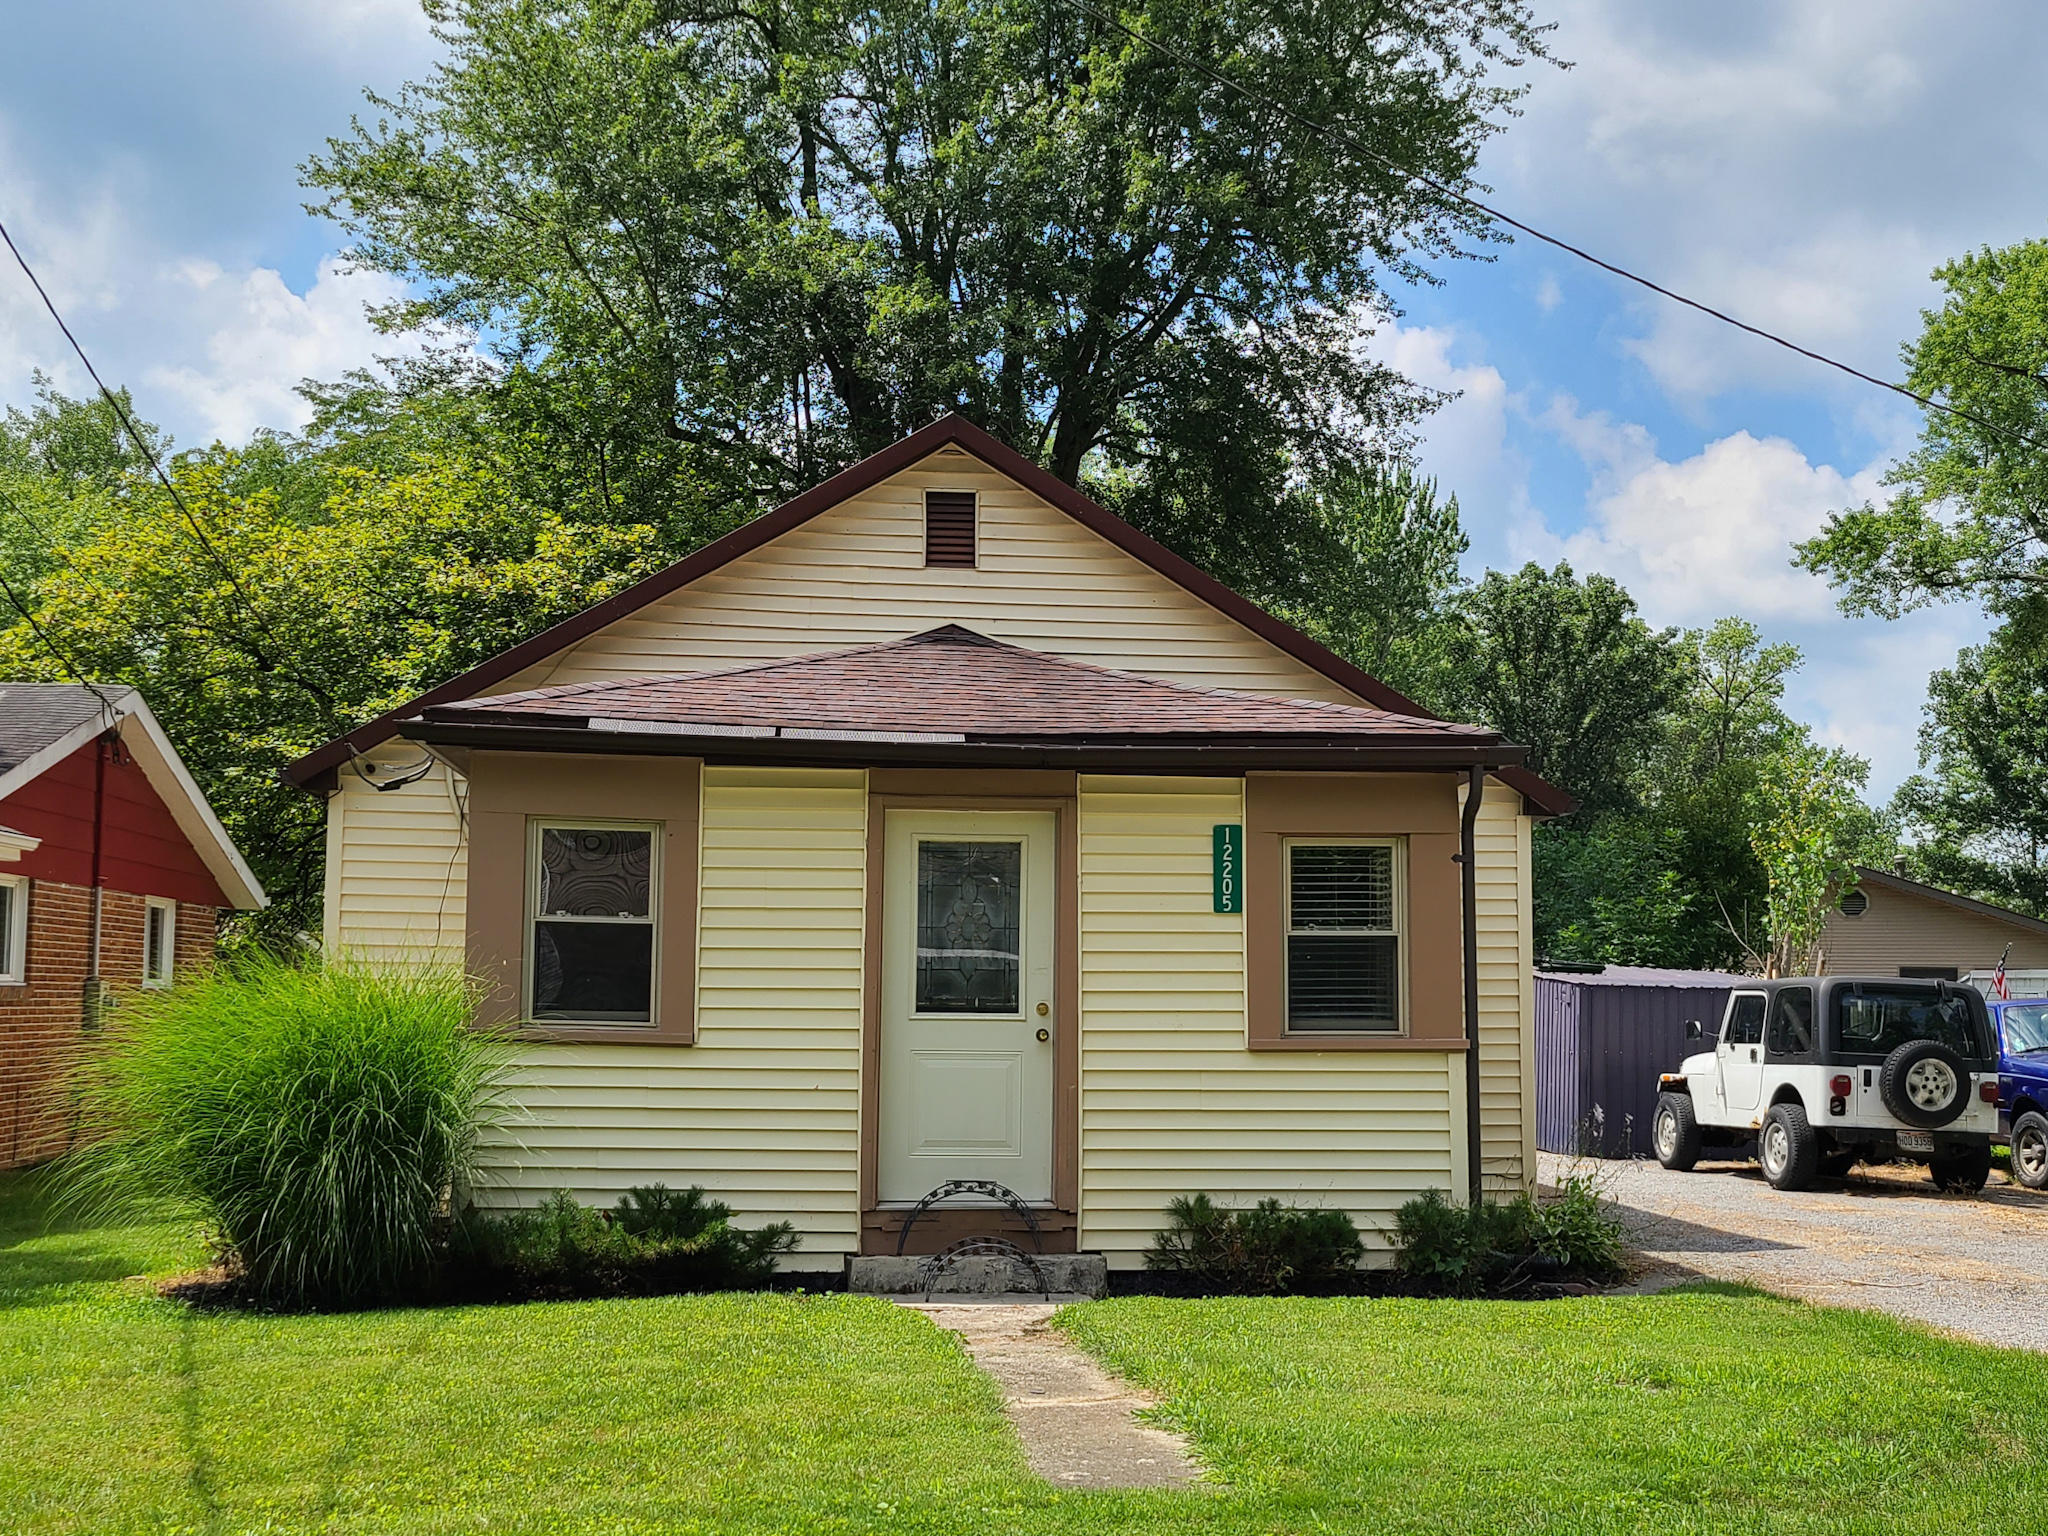 Photo 1 for 12205 Wagner Dr Minster, OH 45865